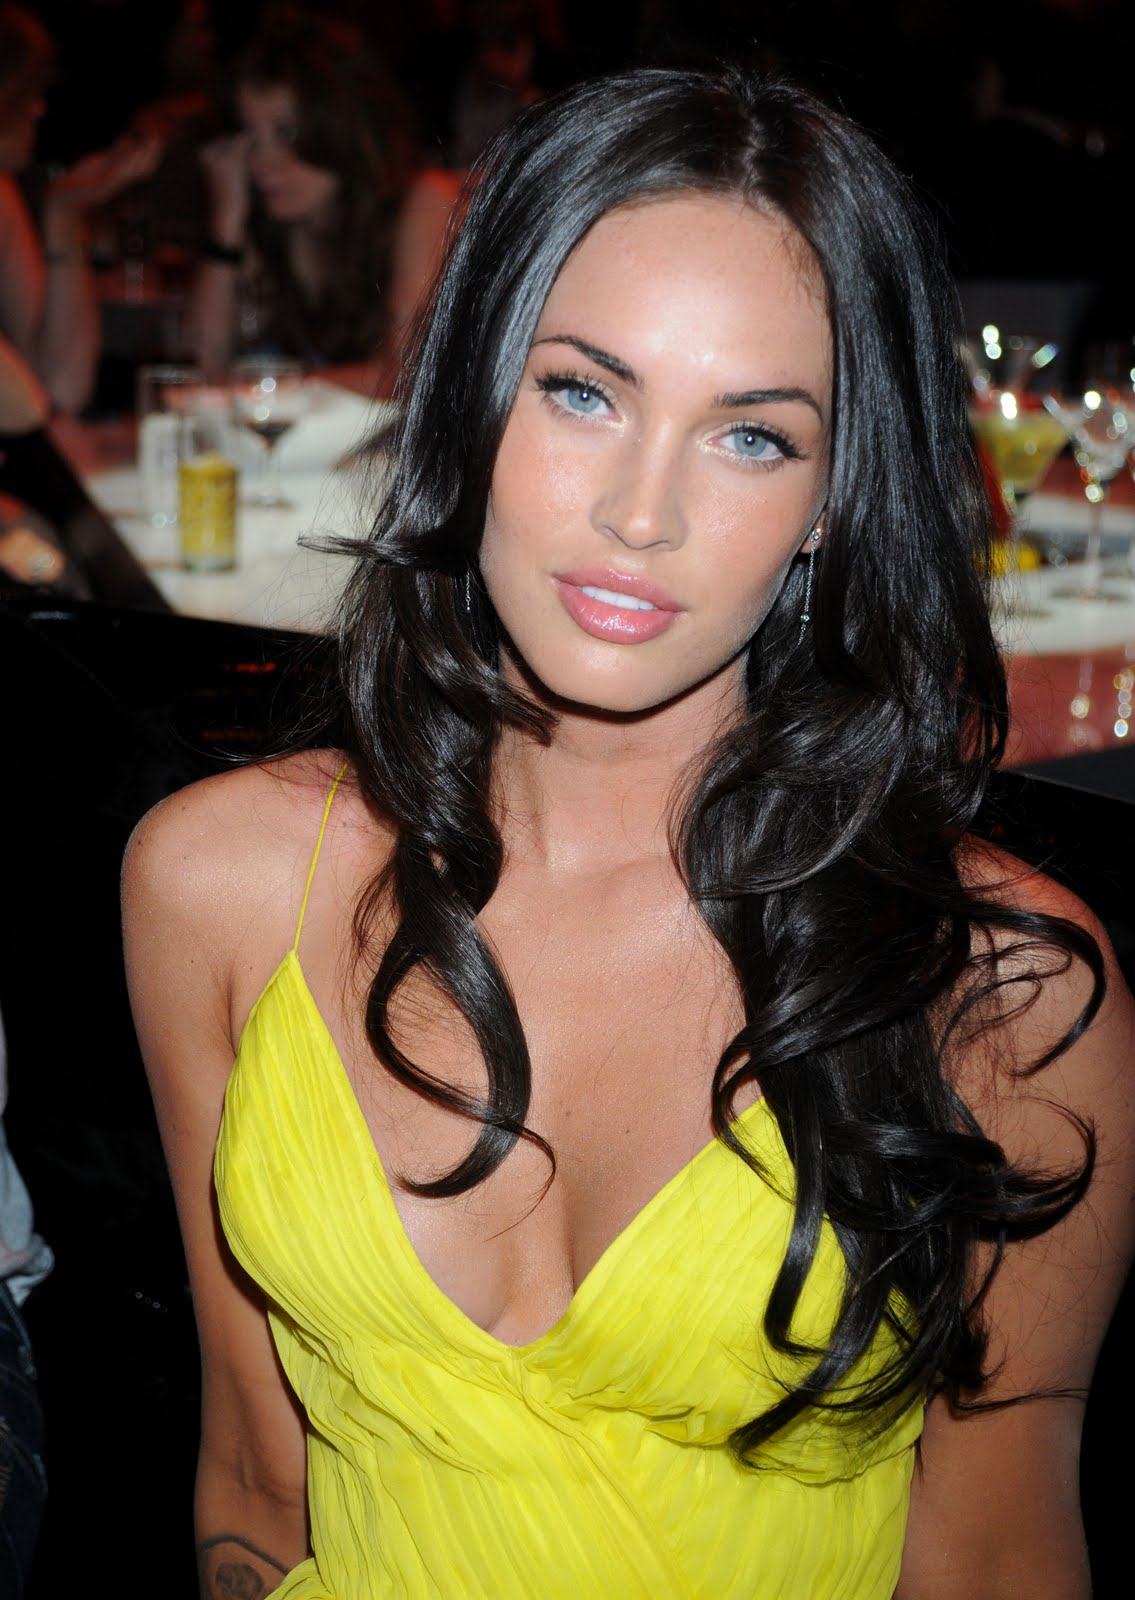 http://2.bp.blogspot.com/_zhIHU9NMrzk/TH2whoqQJJI/AAAAAAAAA1M/nsVCFMDdbno/s1600/megan-fox_net_spike_tv_guys_choice_awards_1_%284%29.jpg